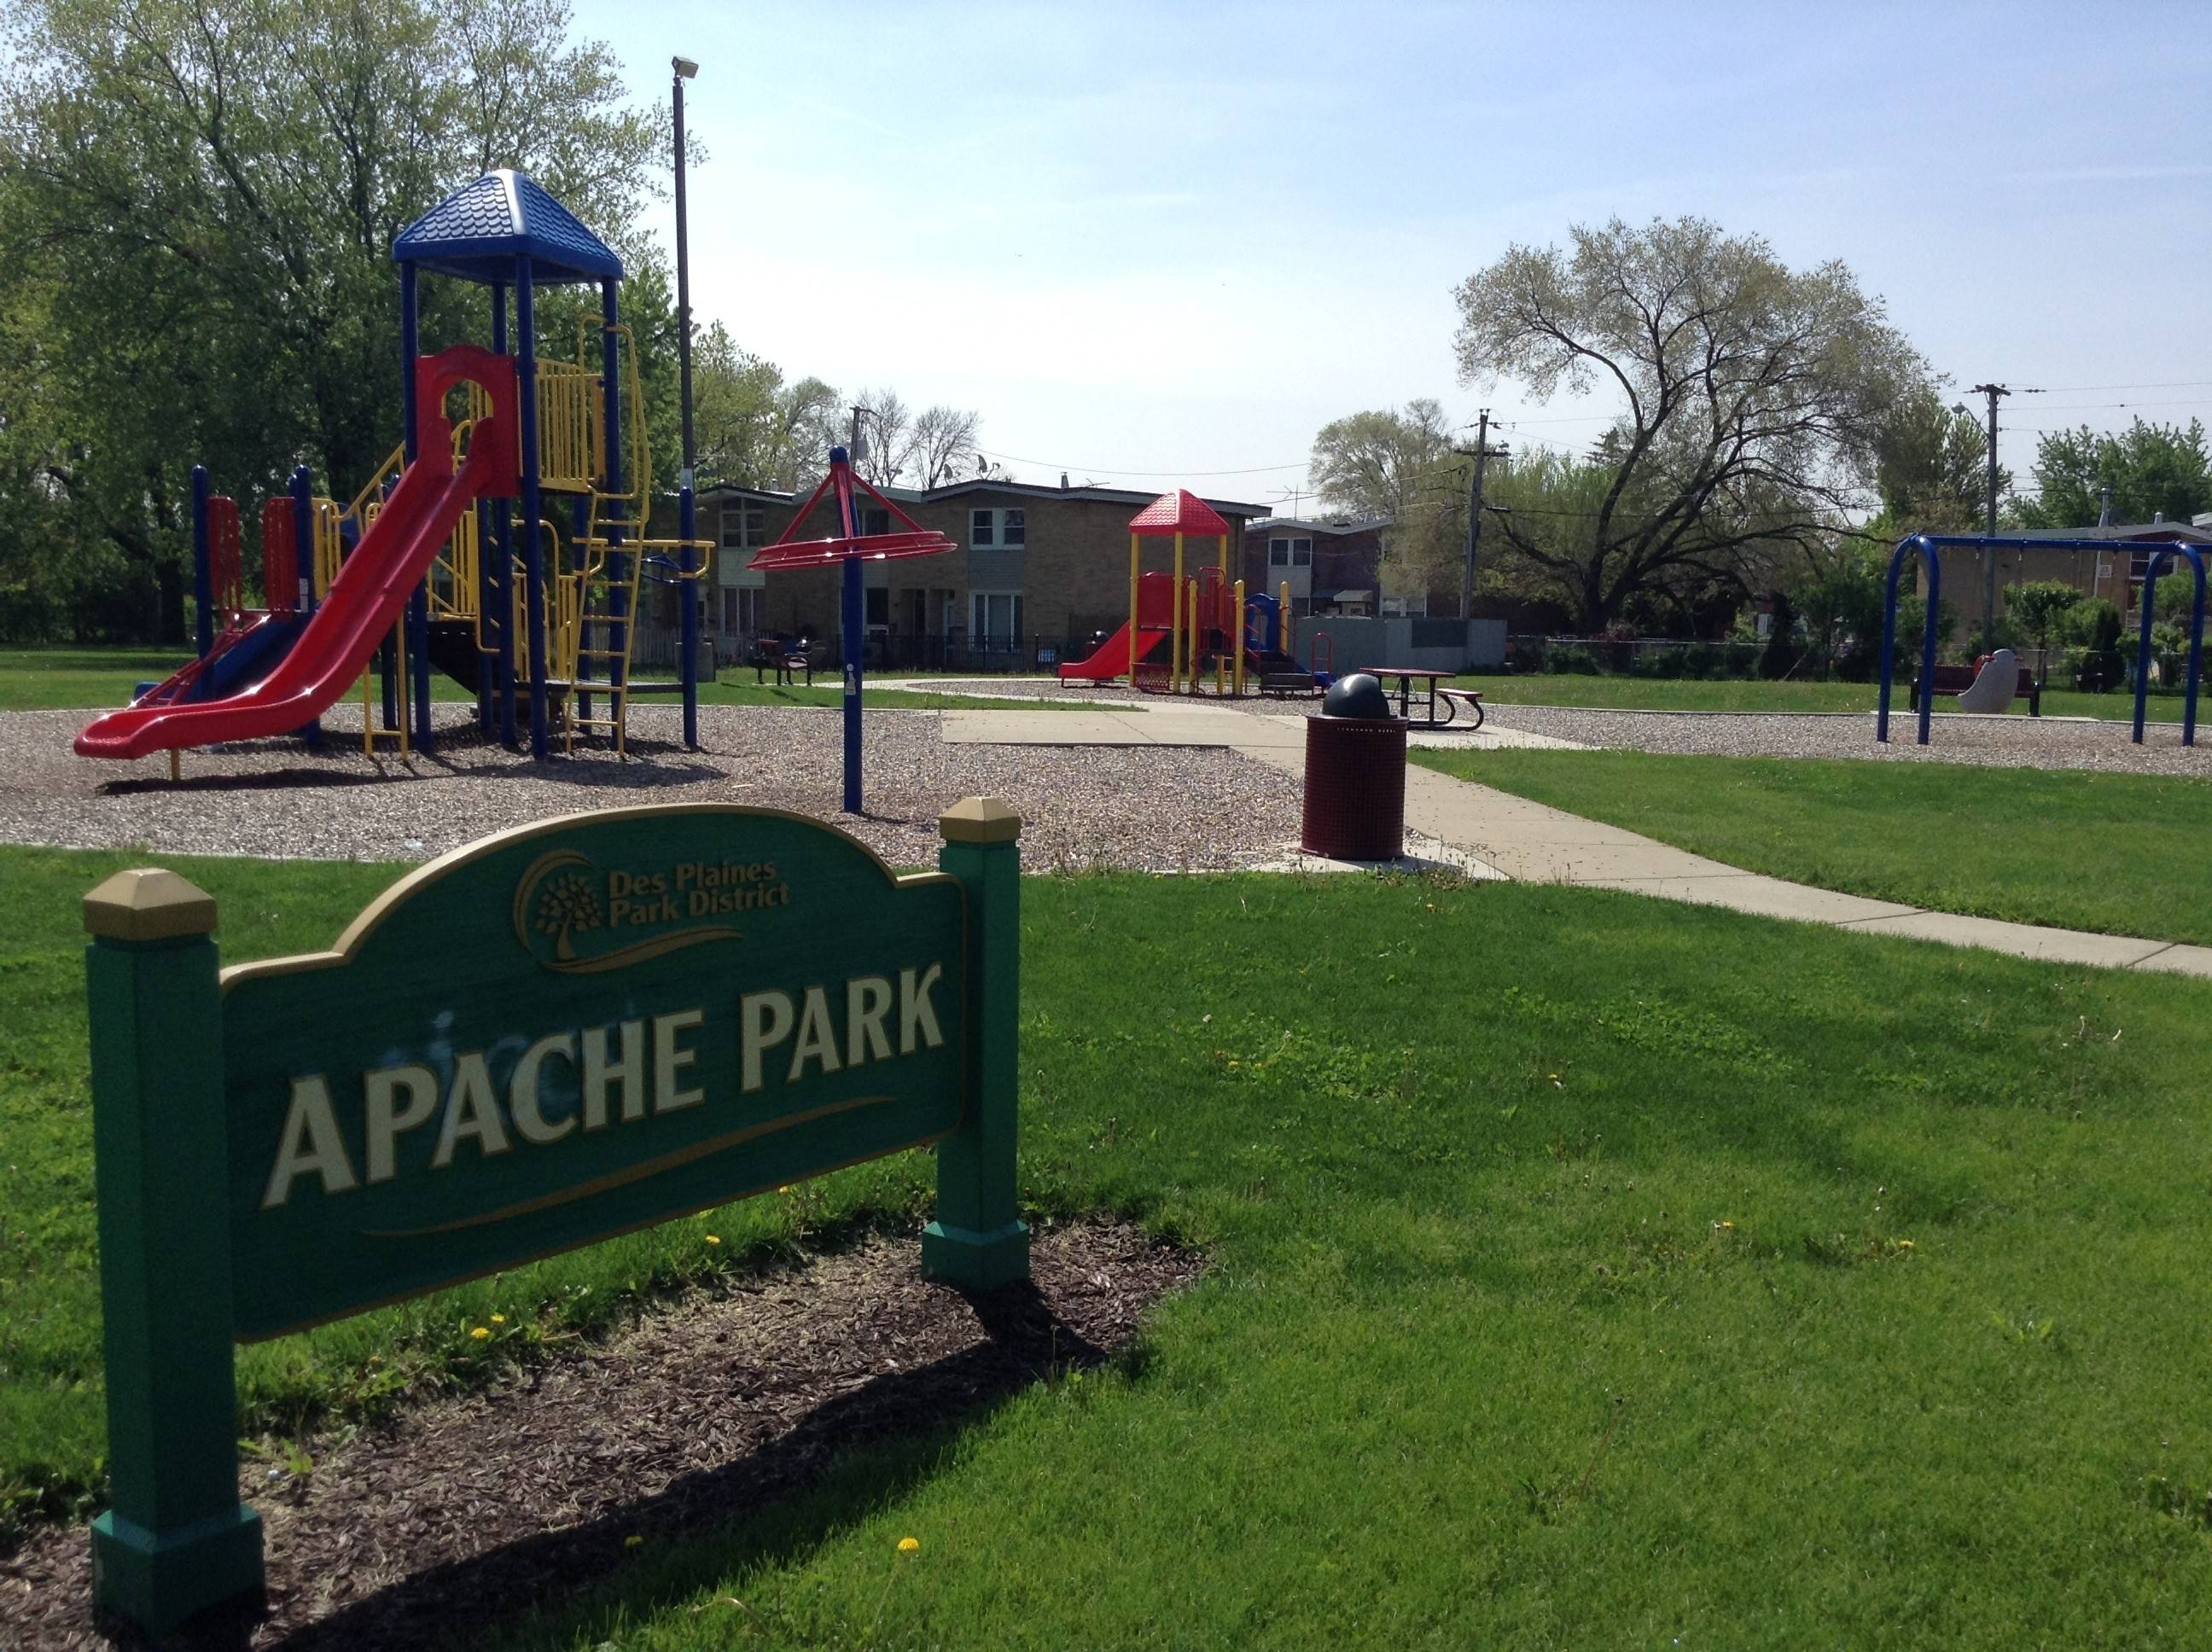 Des Plaines plans $400,000 of improvements at Apache Park